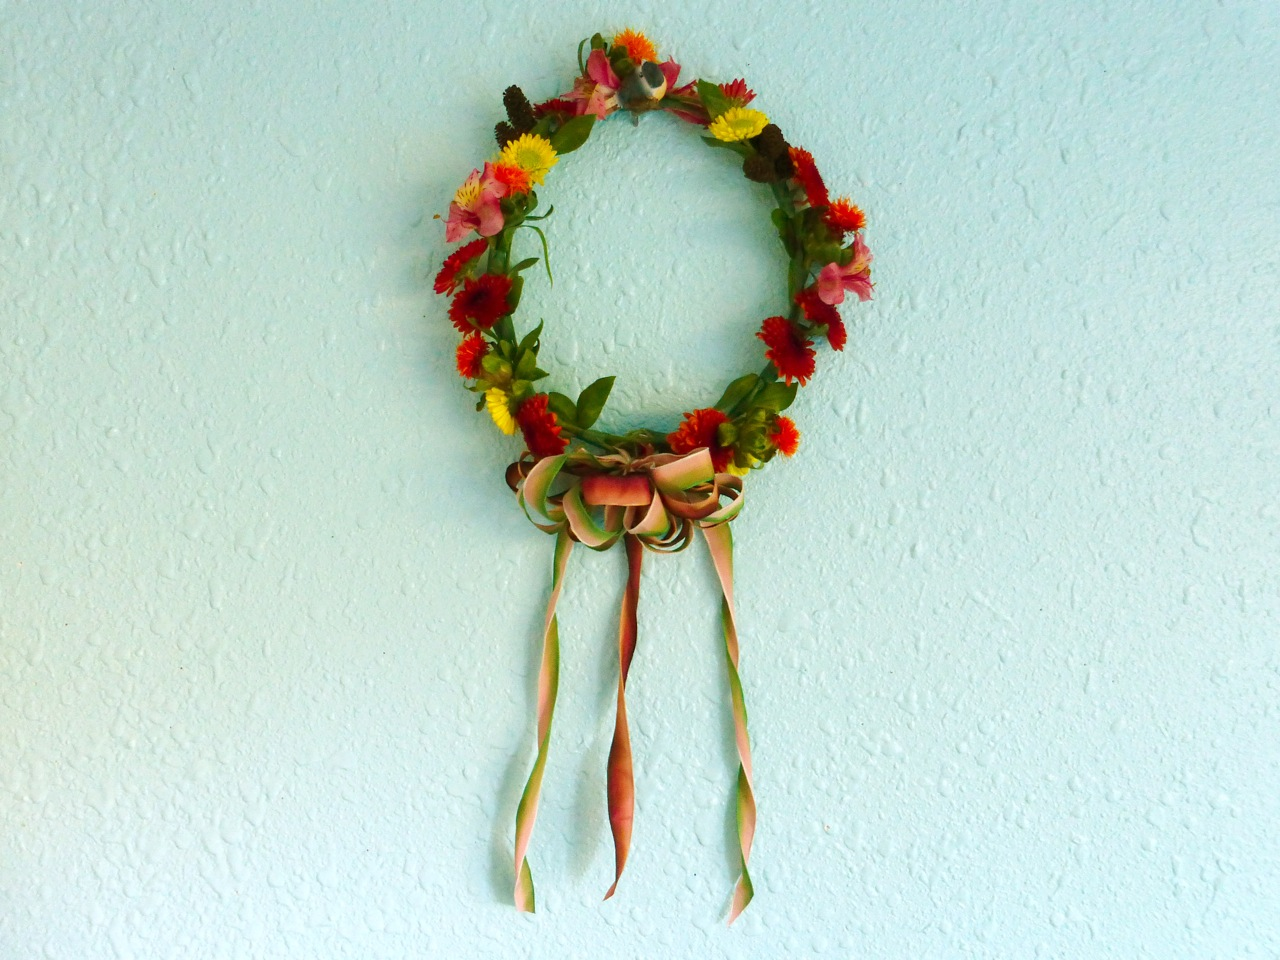 DIY, Do It Yourself, Autumn Floral Crown, Floral Crown, head wreath, Trader Joe's bouquet, Trader Joe's seasonal bouquet, floral crown made with Trader Joe's flowers